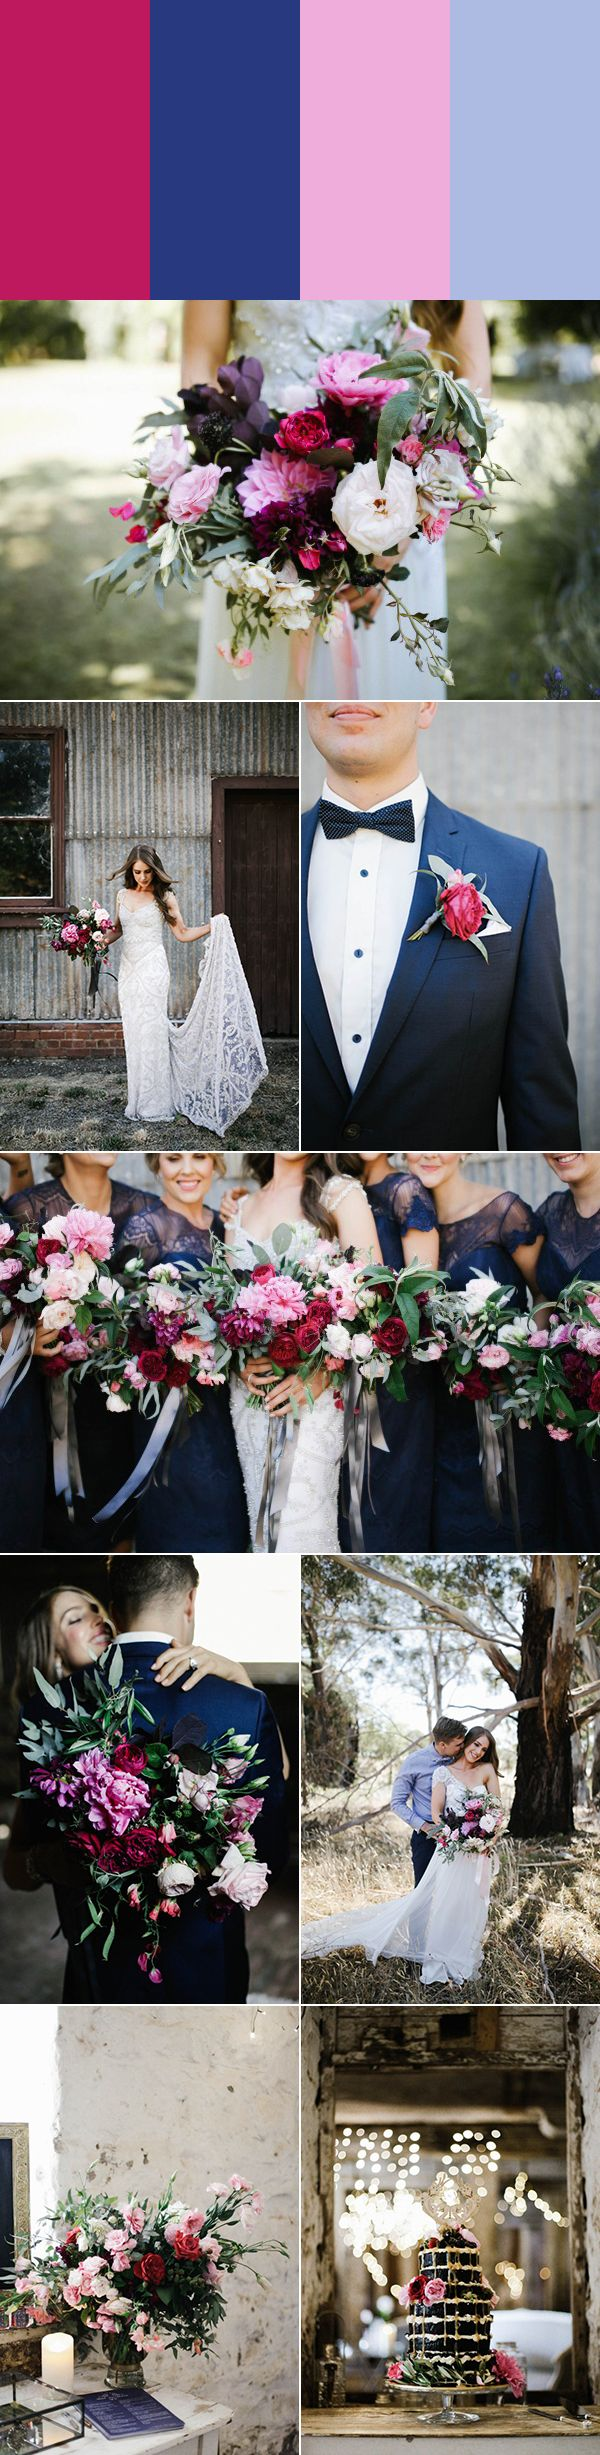 2948cf5a44a81acdcbd585c78c43fd6e pink wedding colors wedding color palettes - cranberry, navy, peony, and baby blue wedding style | photos by Brown Paper Parc...